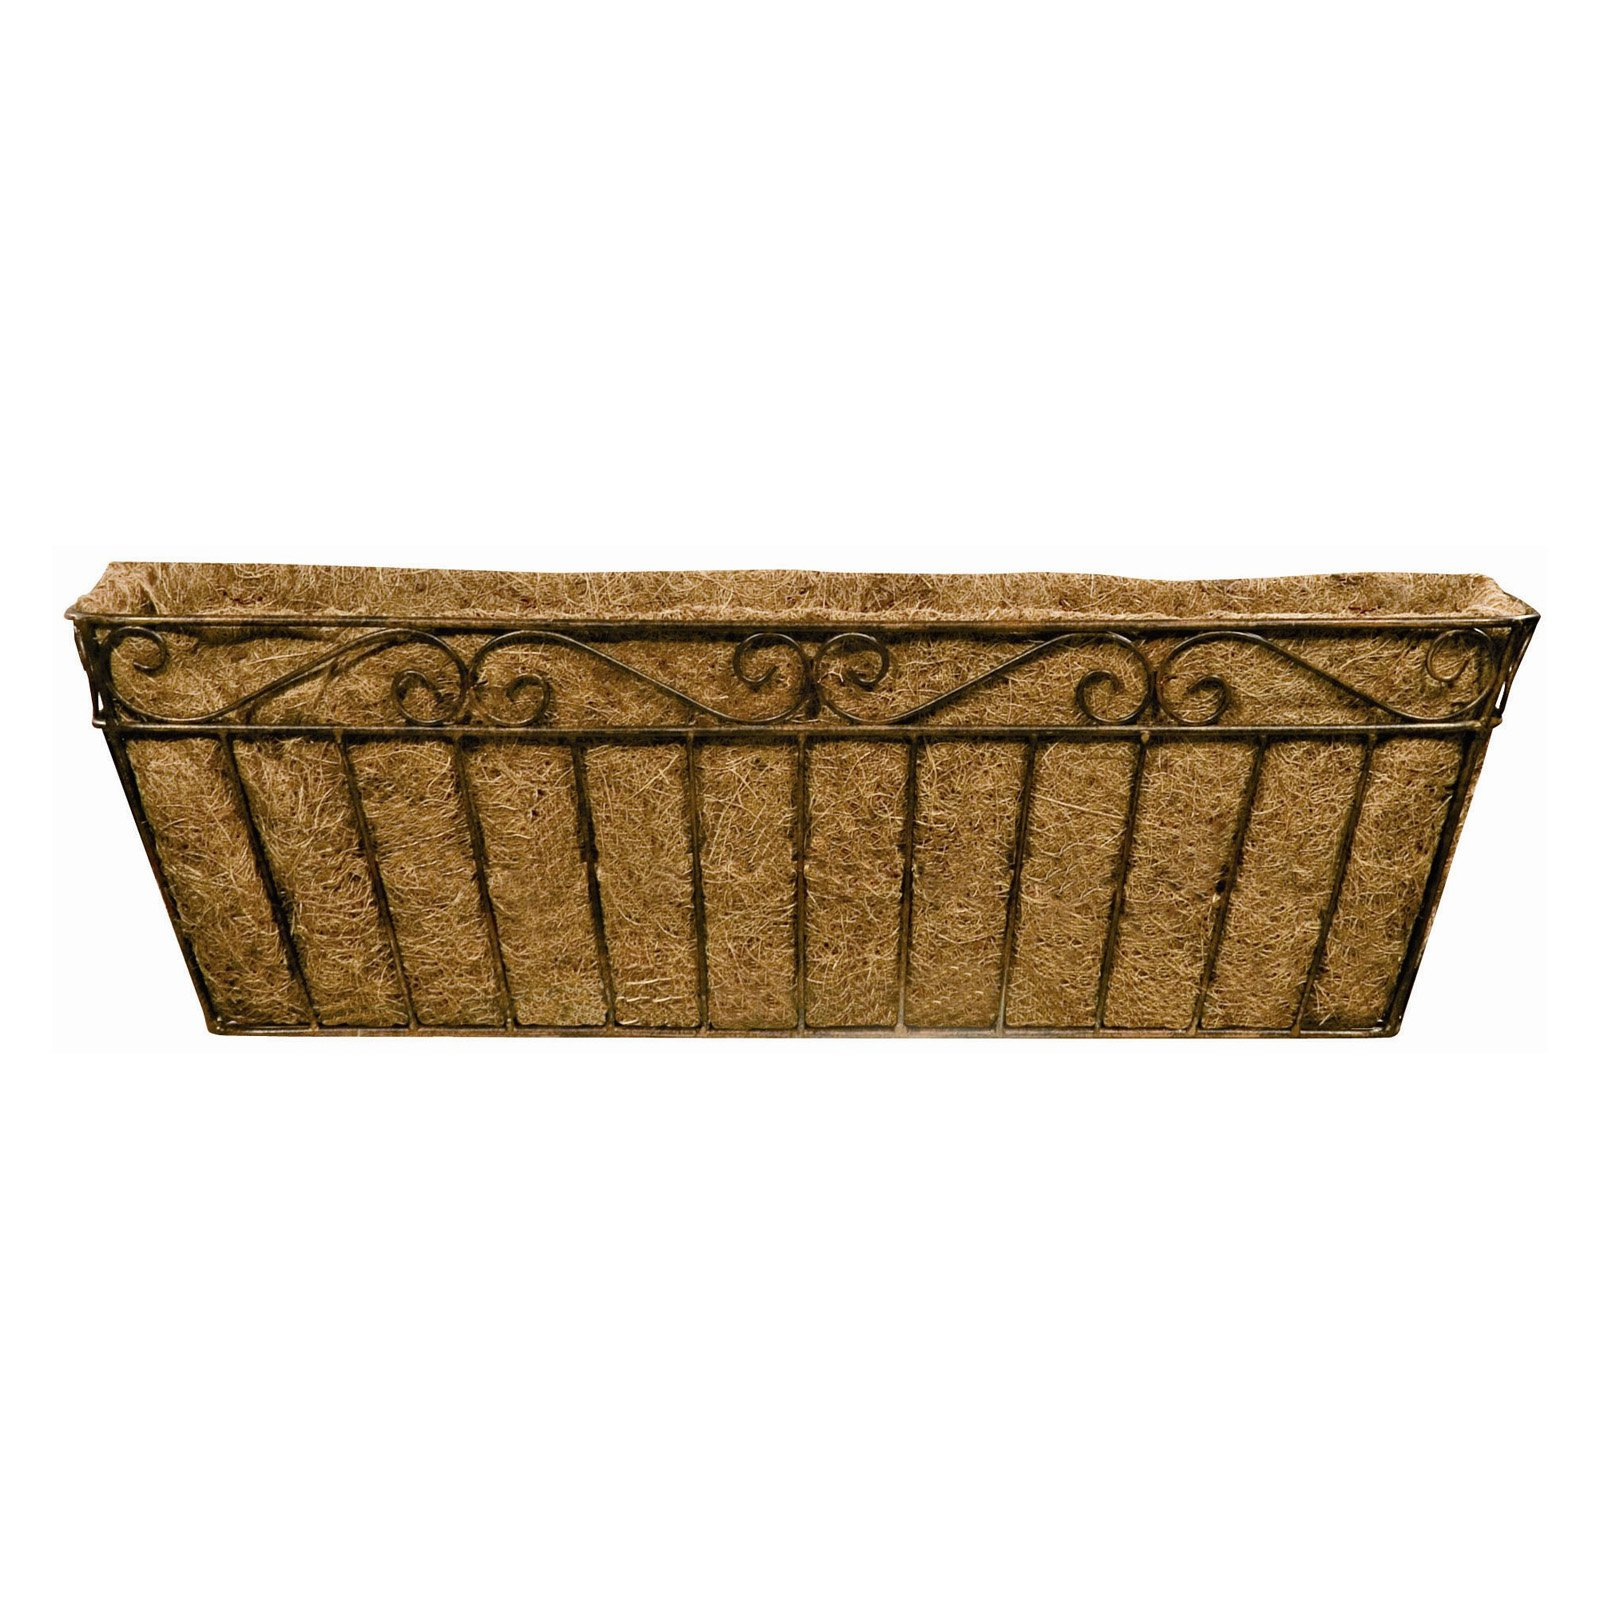 Window Box Png - Deer Park Ironworks Imperial Window Box with Coco Liner - Walmart.com